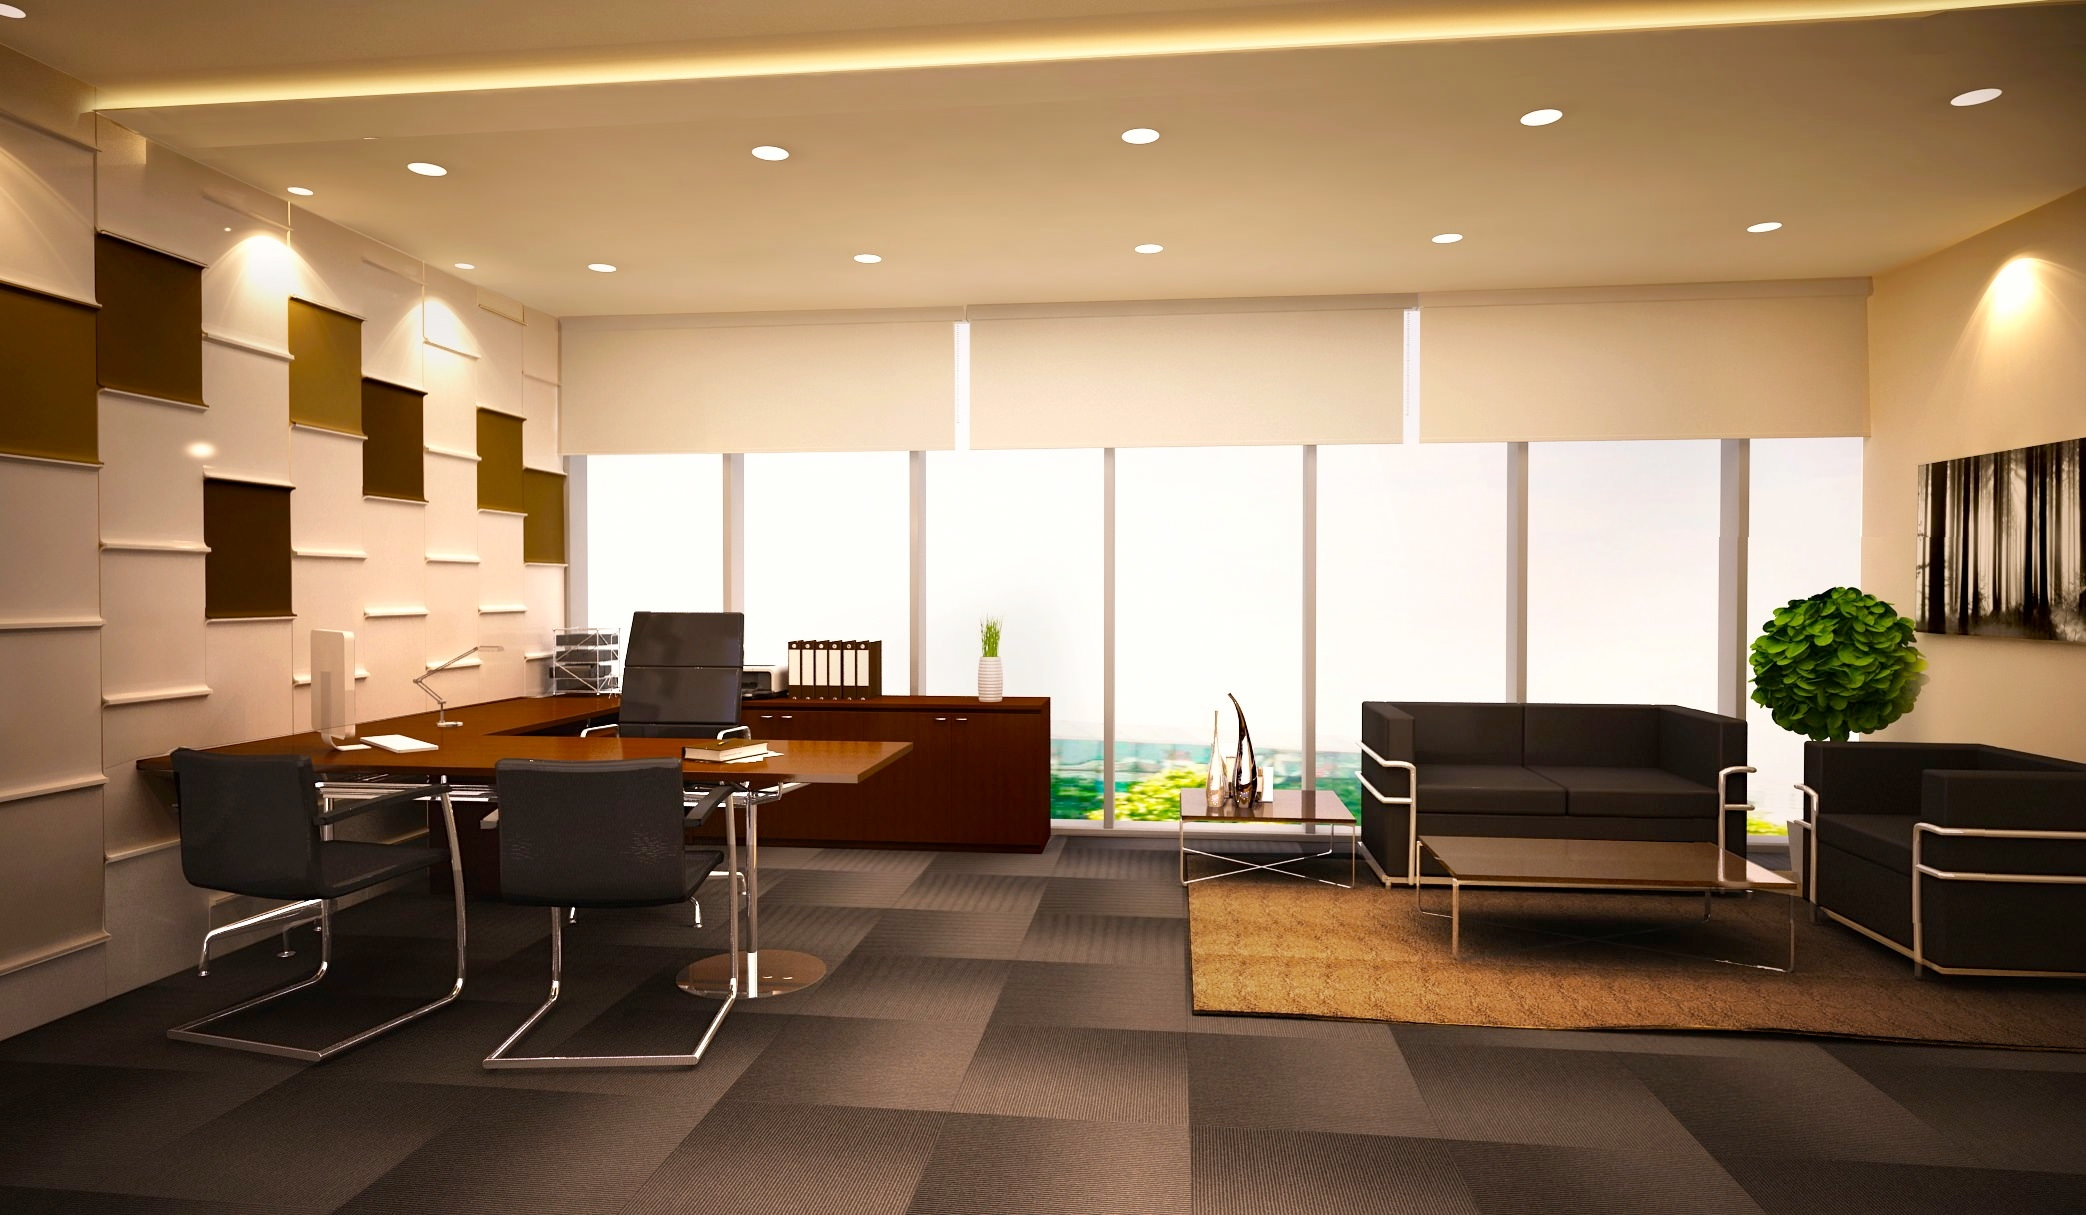 Minimalist Office Space Design